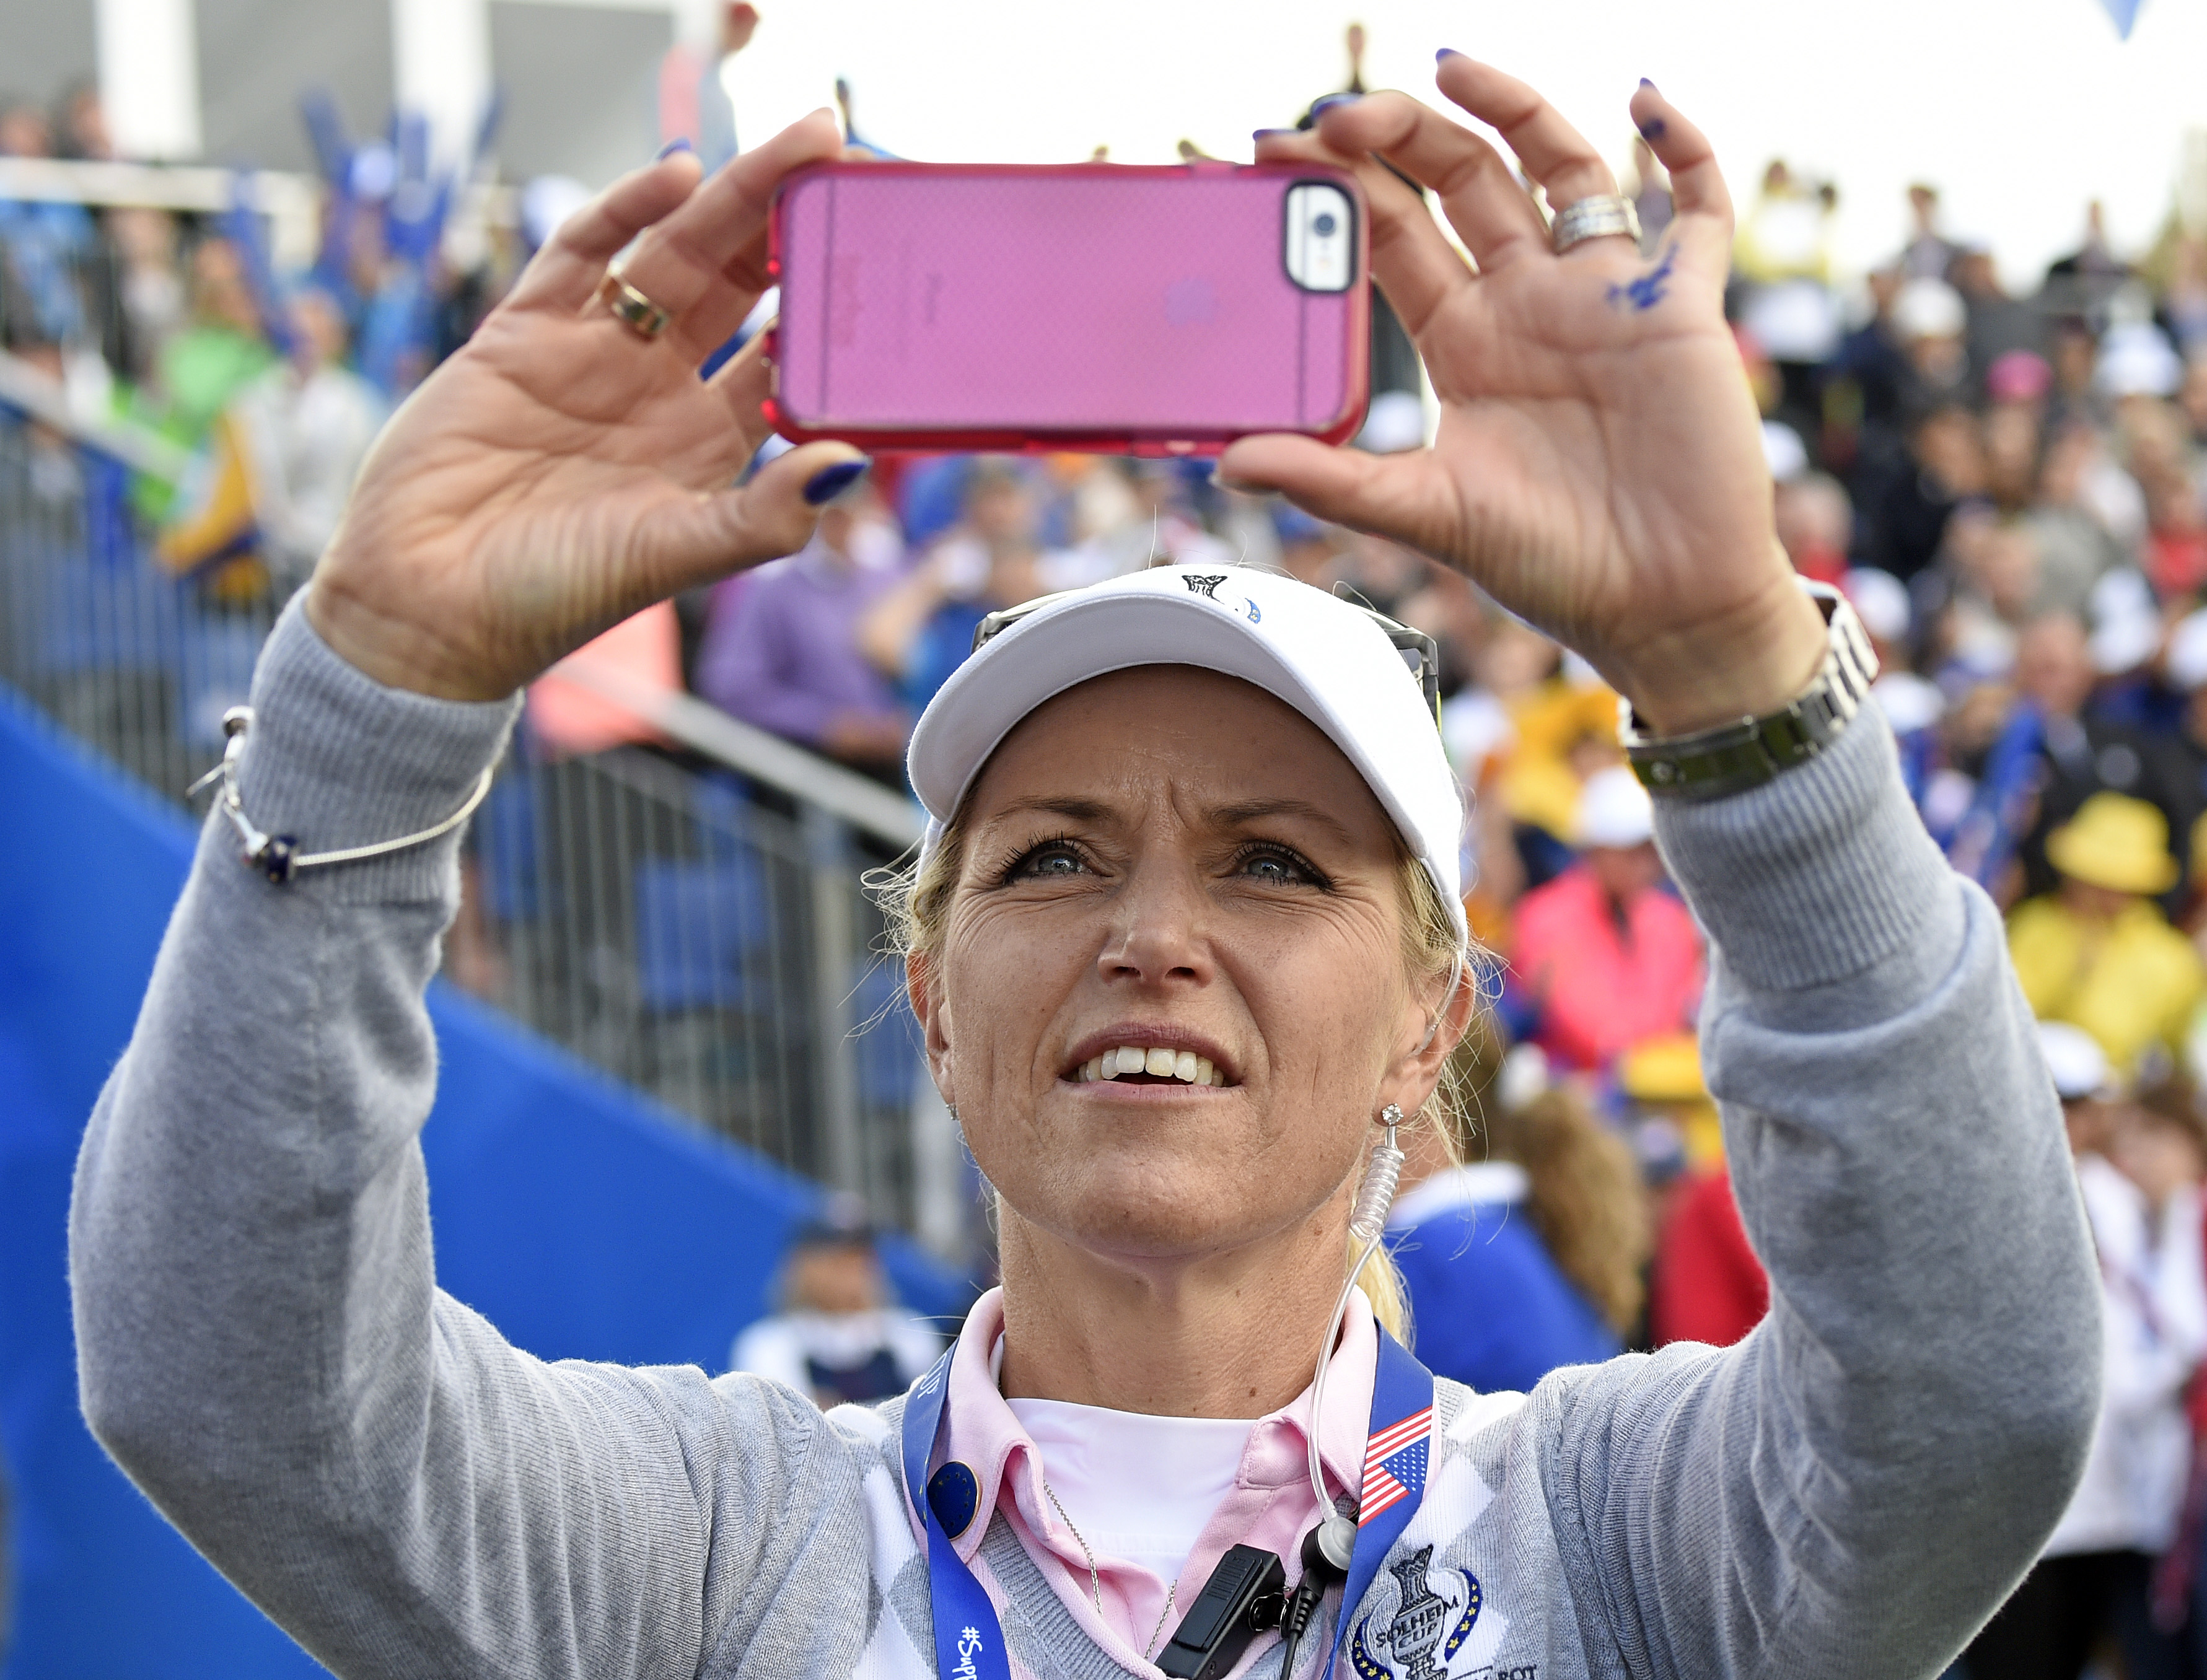 Europe's team captain Carin Koch of Sweden during the fourballs on Day2 at the Solheim Cup golf tournament in St. Leon-Rot, southern Germany, Saturday, Sept. 19, 2015. (AP Photo/Jens Meyer)